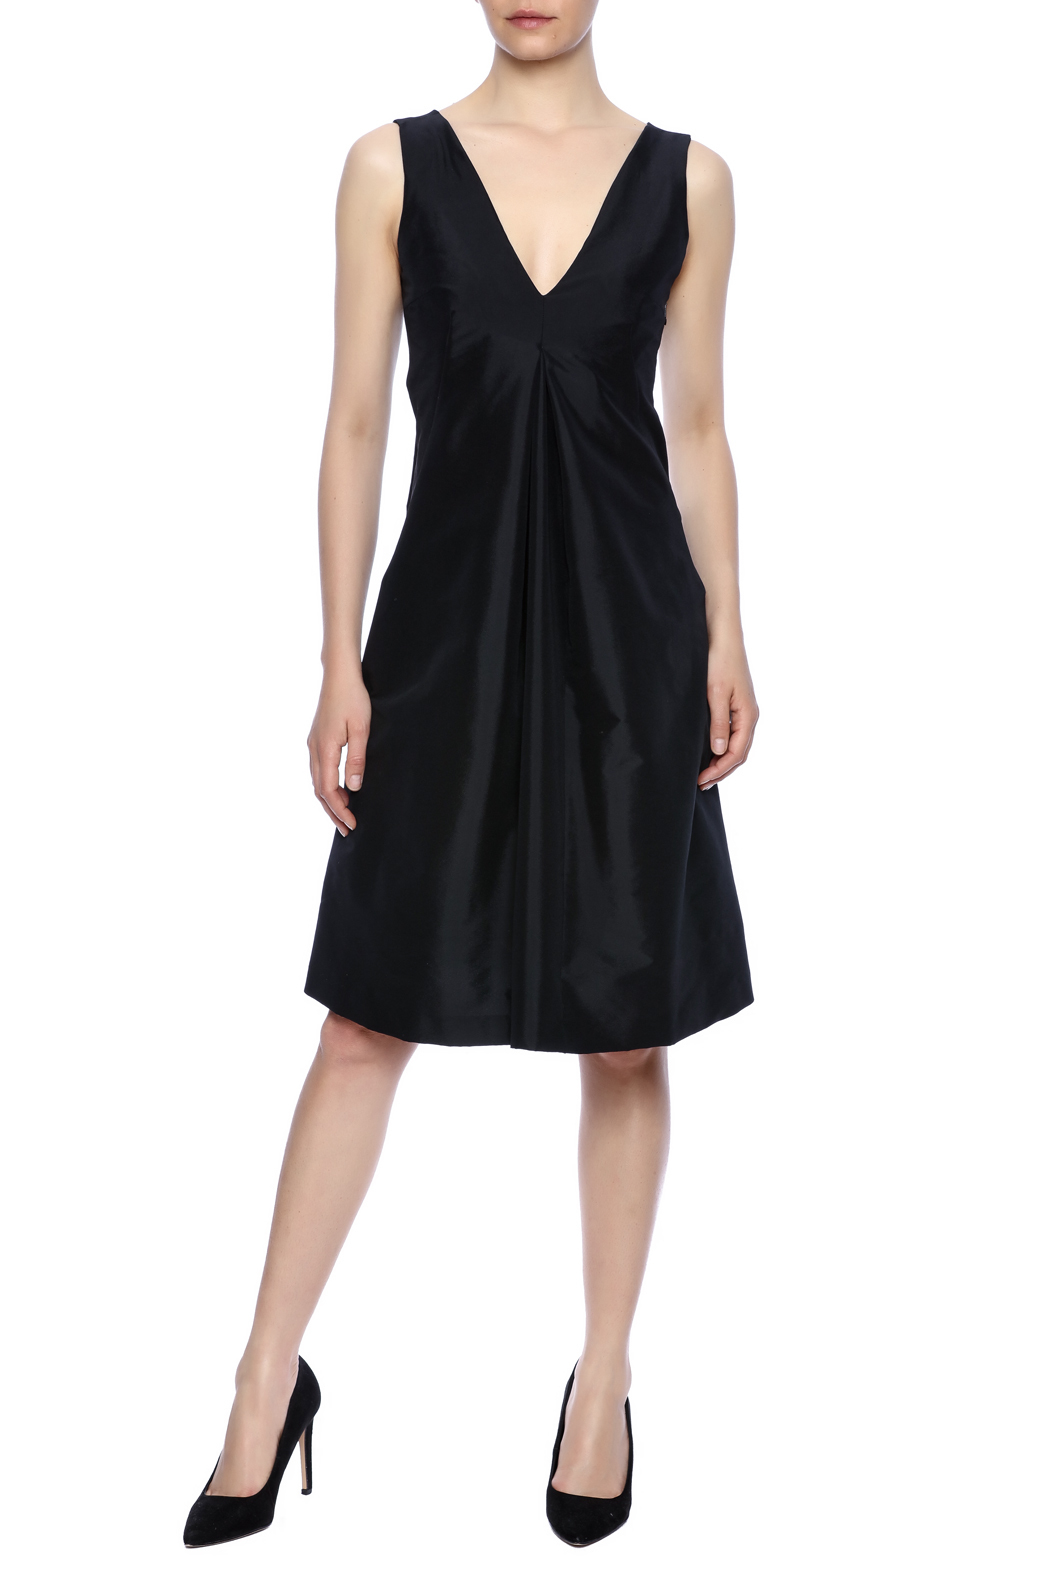 Robert Greco Couture Black Empire Dress - Main Image